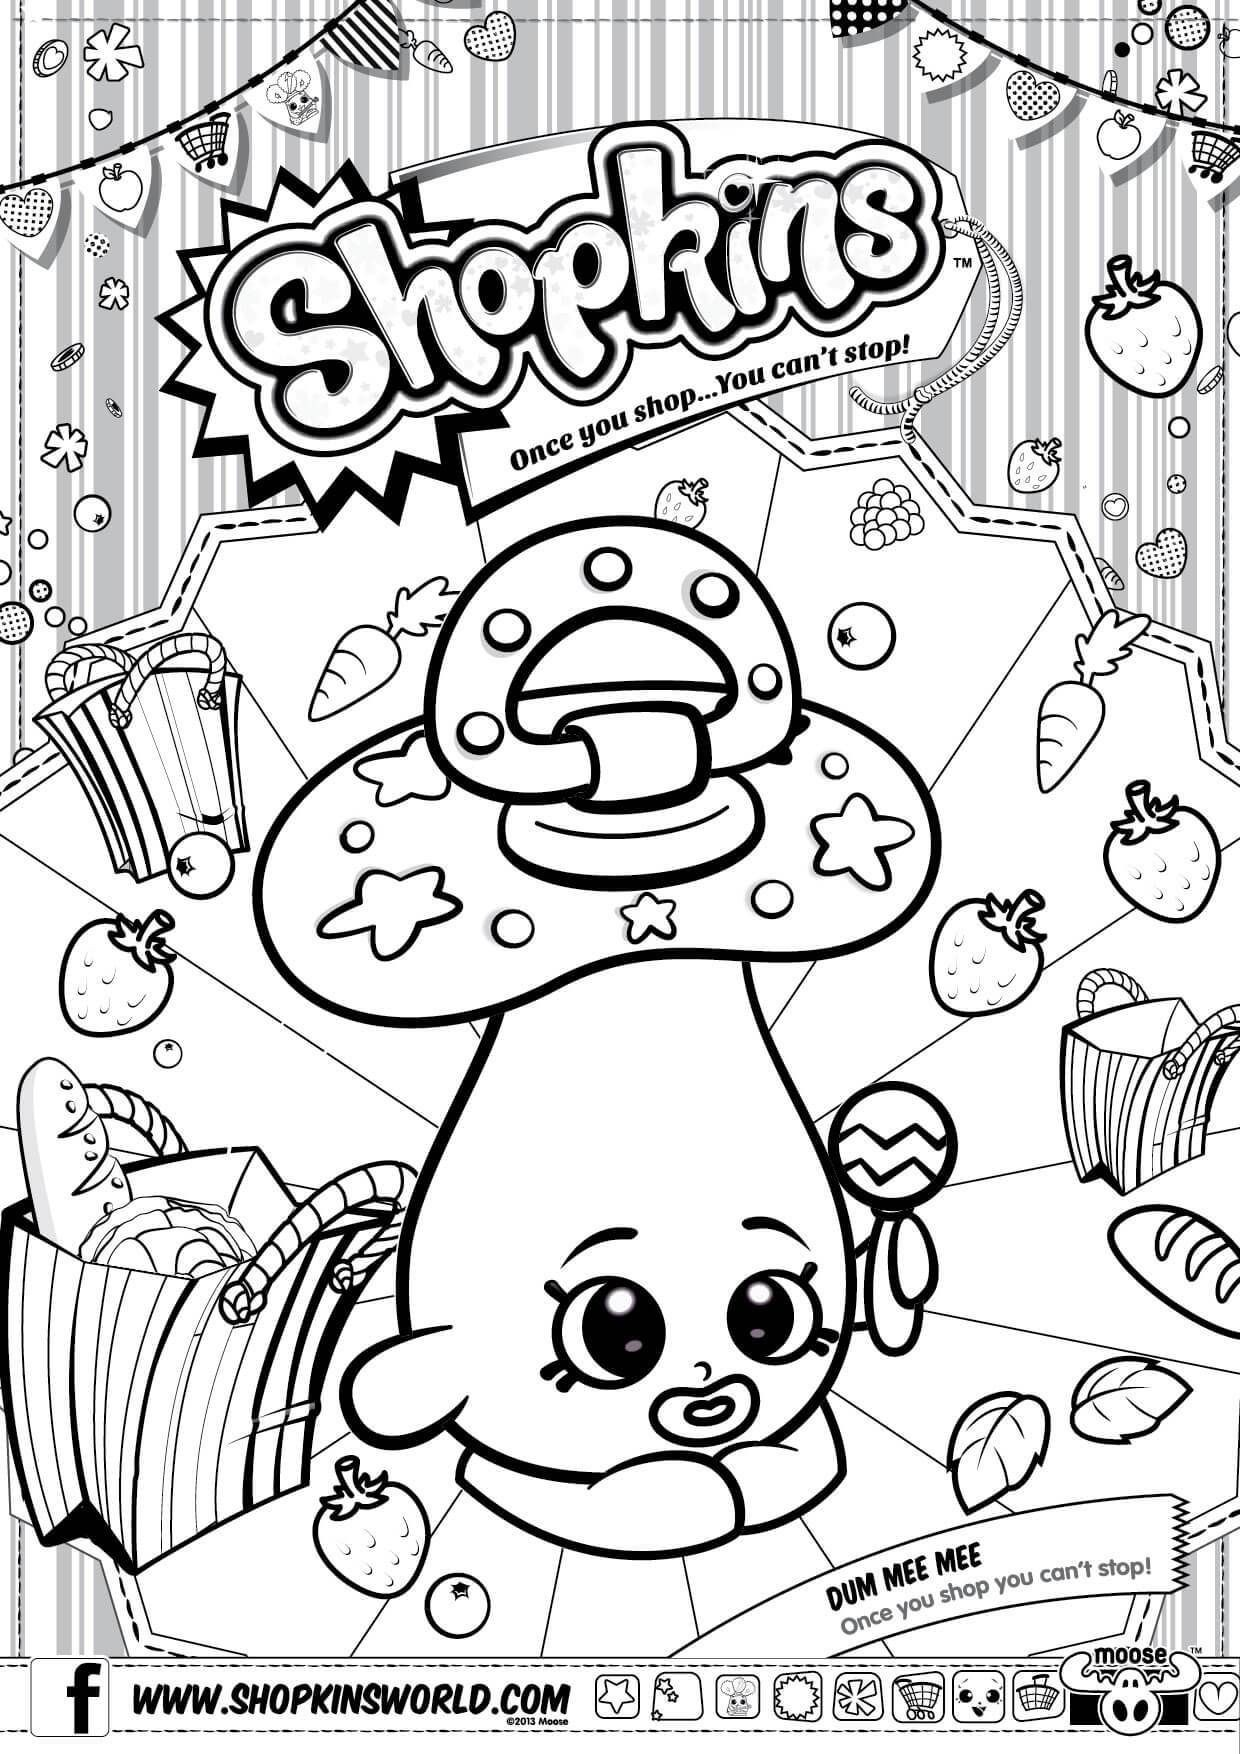 coloring prints free printable shopkins coloring pages at getcoloringscom prints coloring